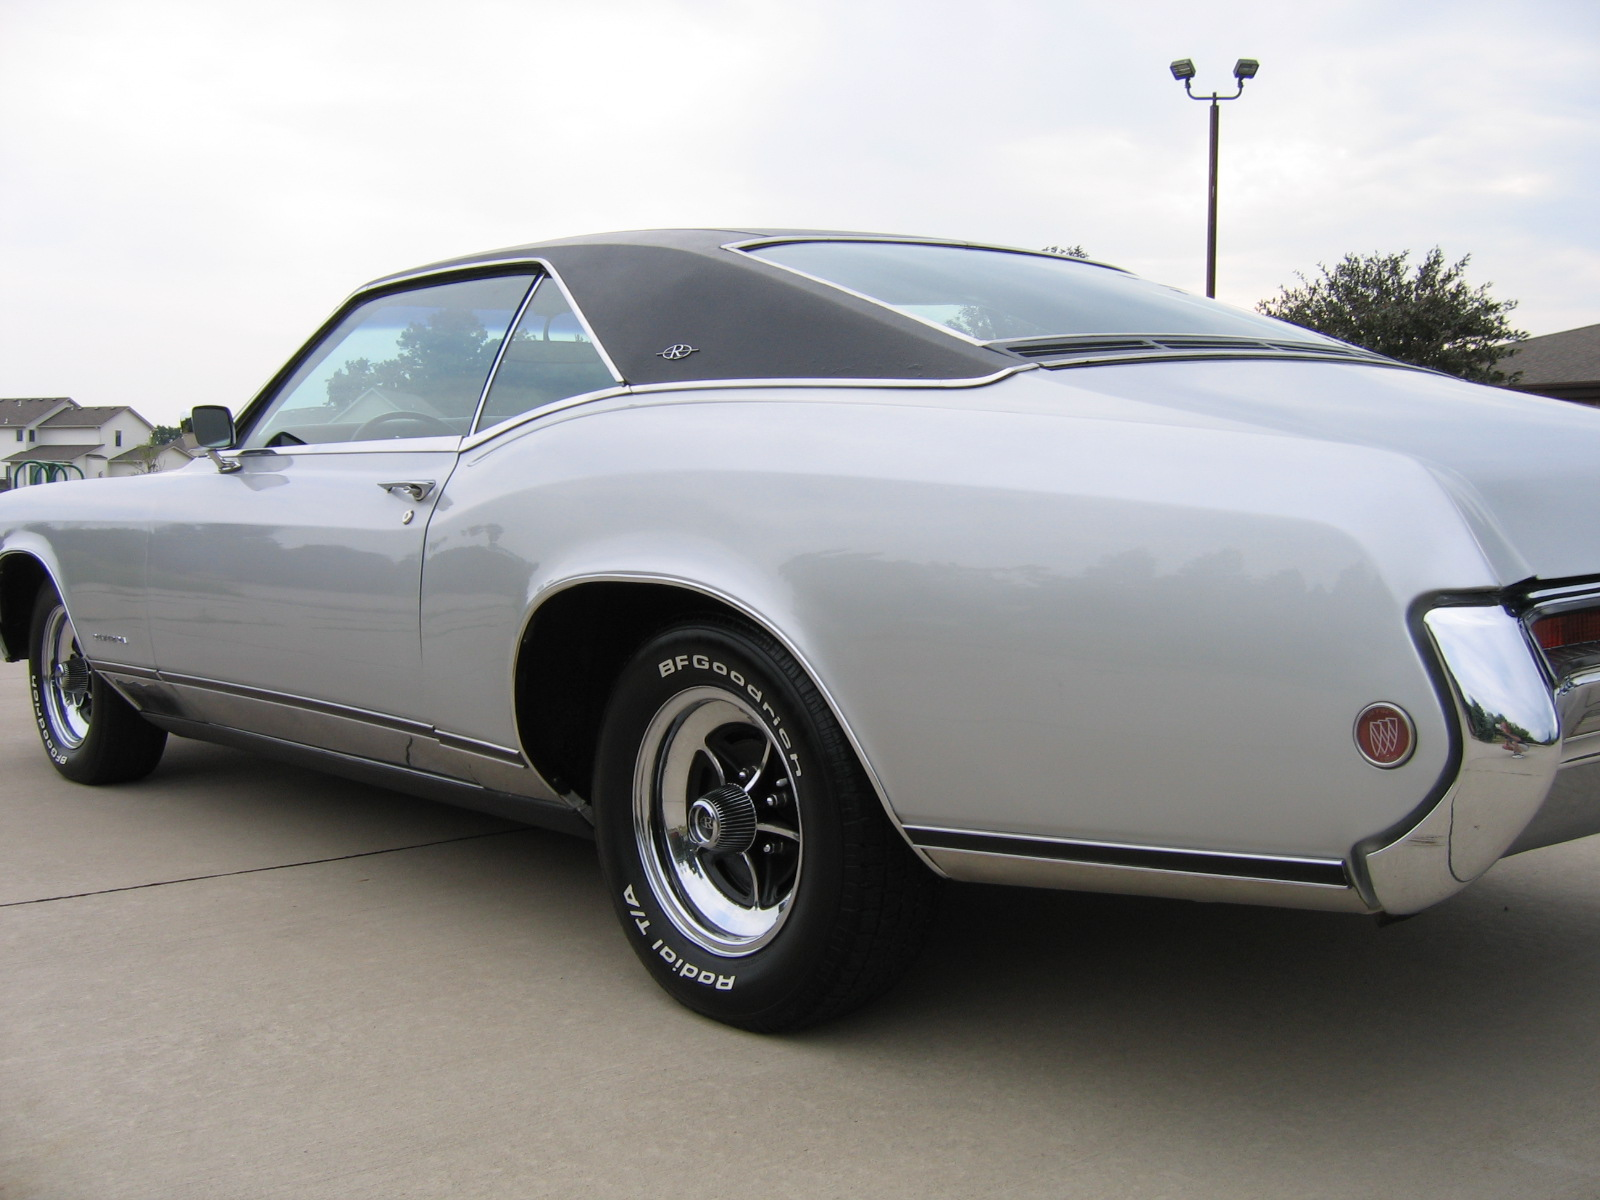 1968 Buick Riviera - Pictures - Picture of 1968 Buick Riviera ...